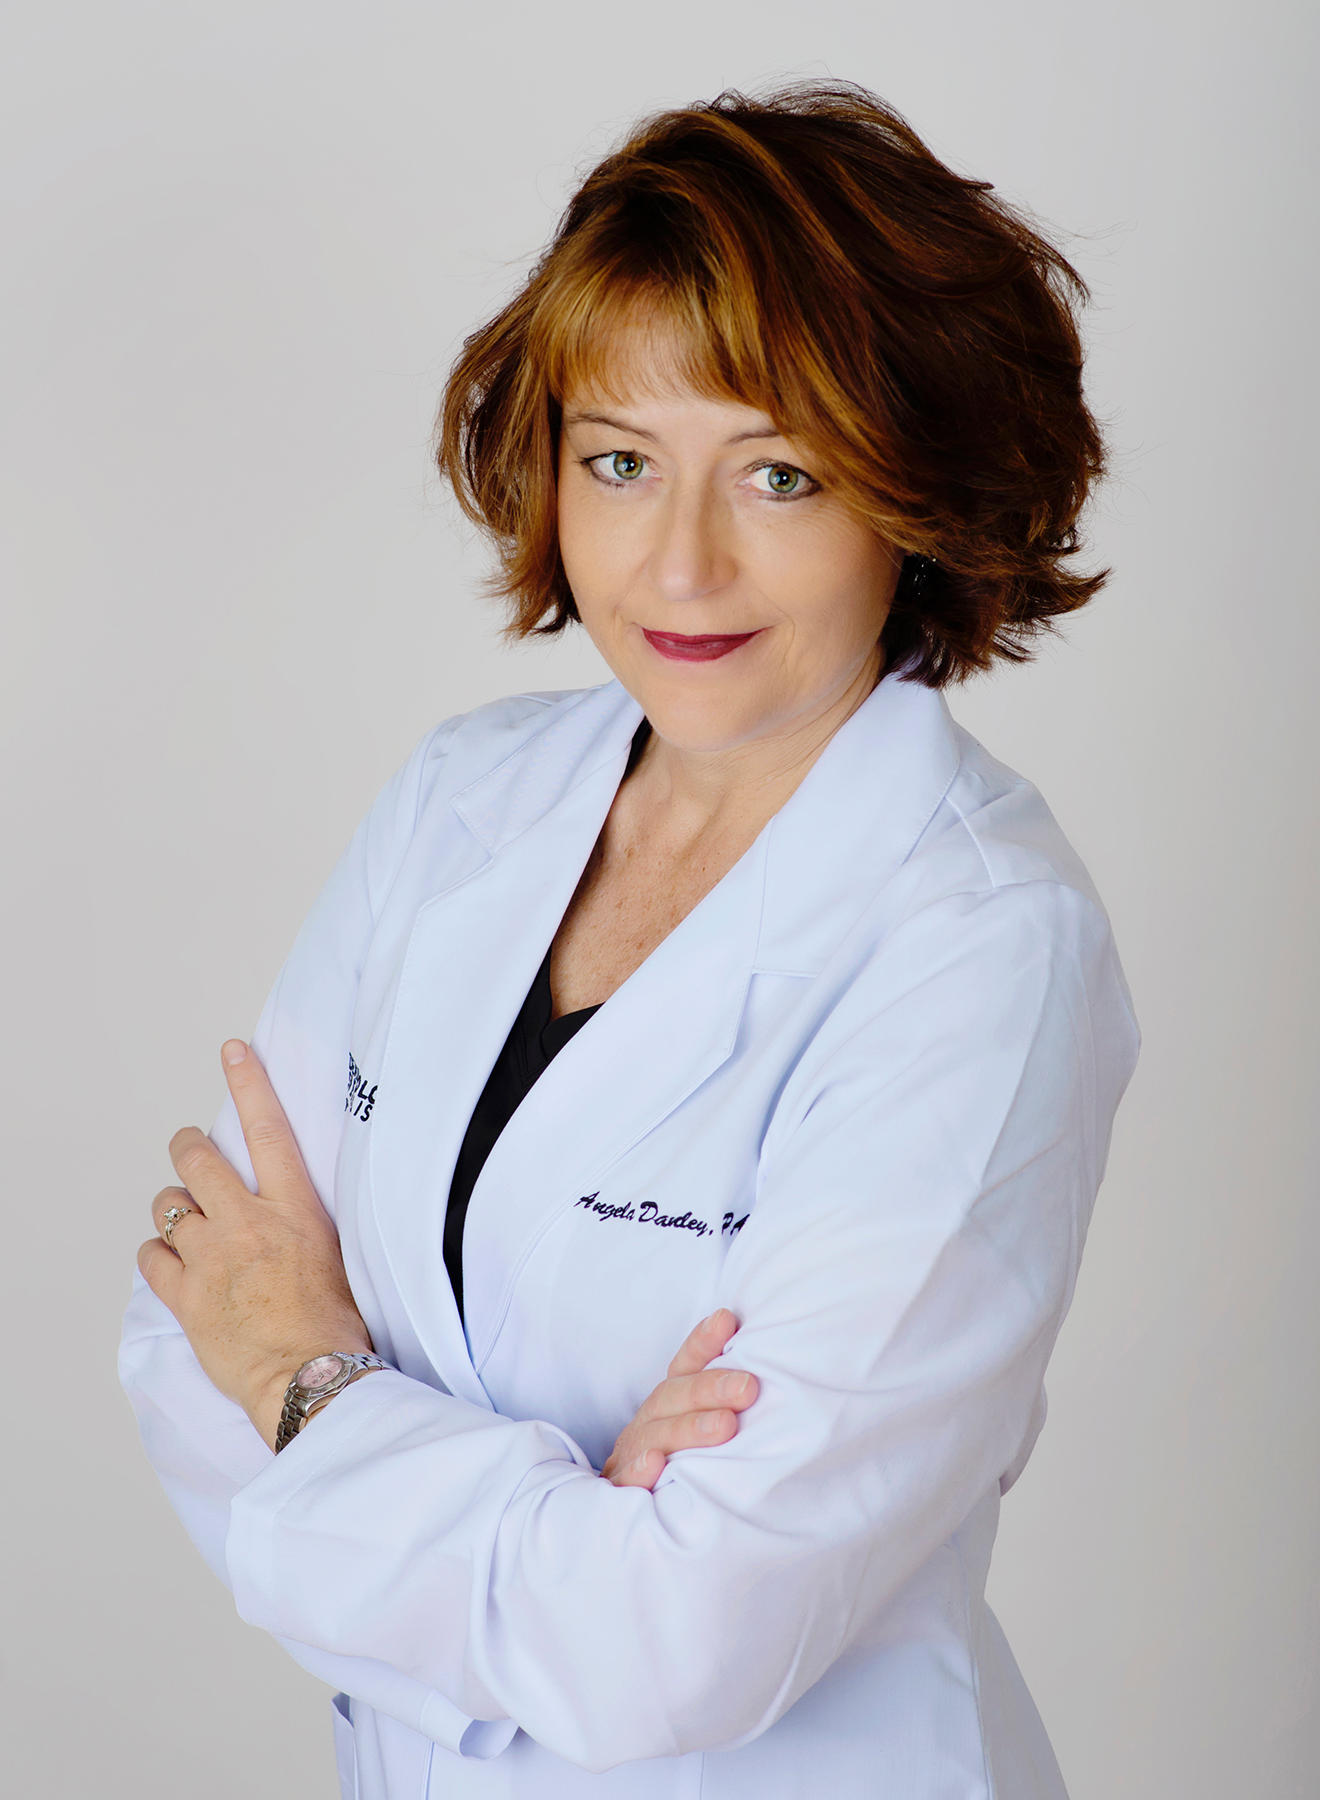 Dermatology Specialists of FL / Aqua Medical Spa image 2